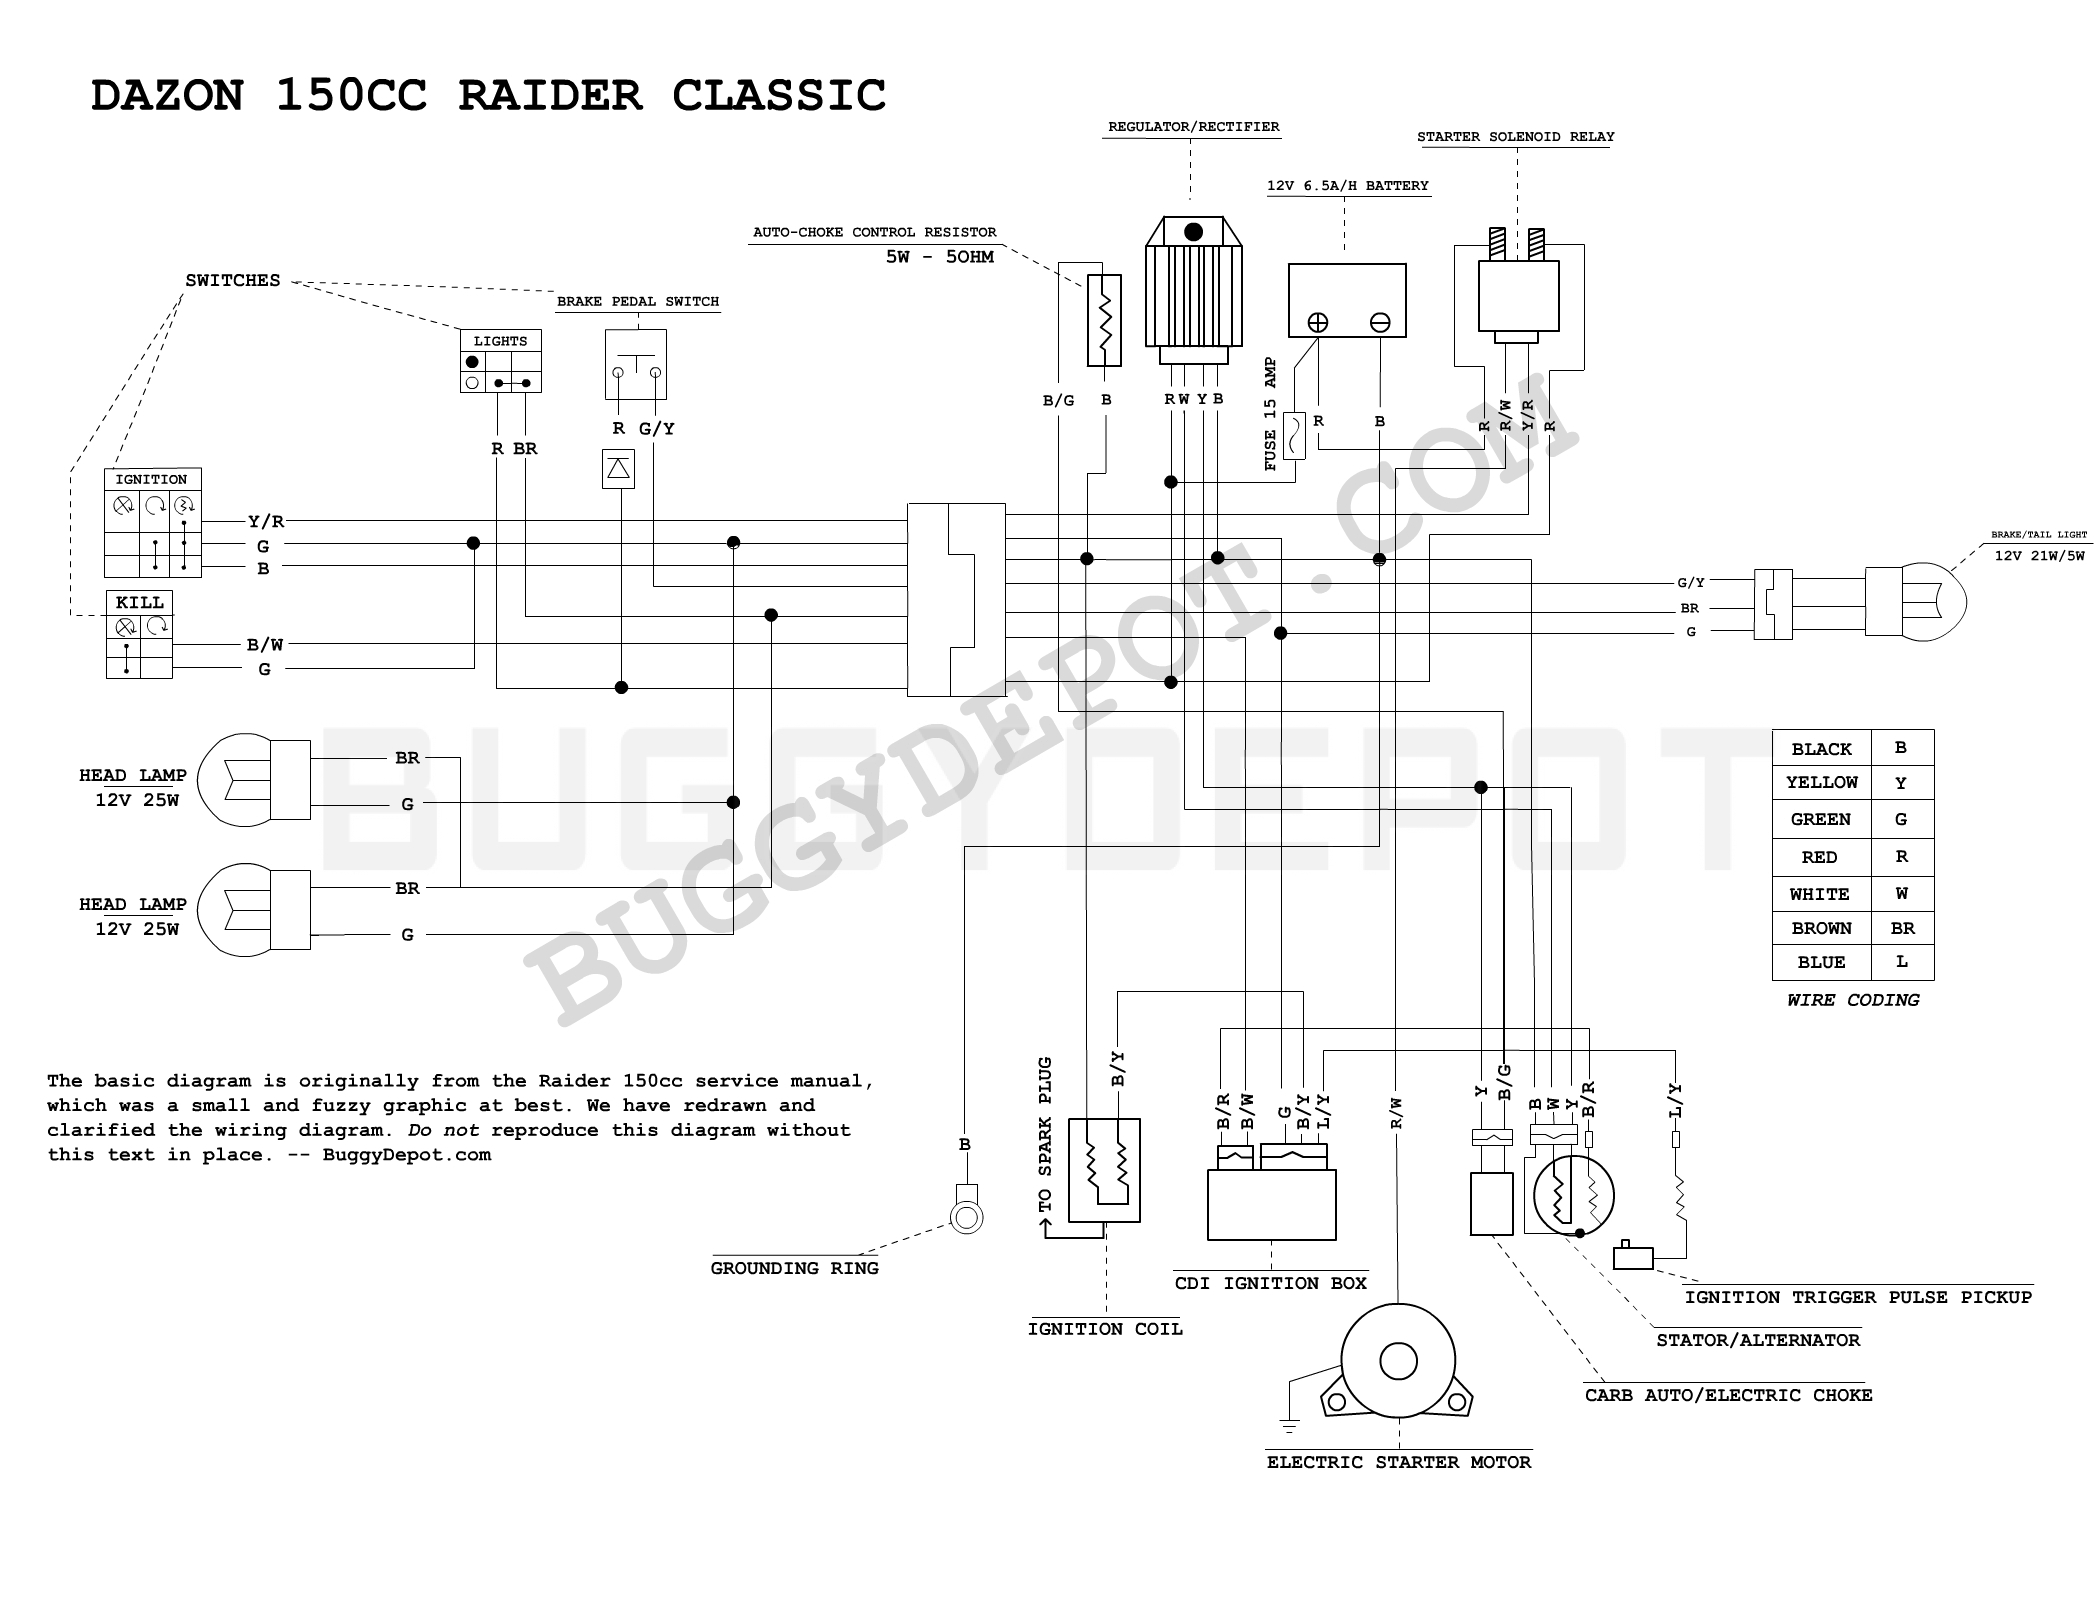 Baja Dune Wiring Diagram Color on baja dune 150 parts, baja dune 150cc, baja motorsports dune 150, baja dune buggy, baja dune 150 forum, baja dune 150-seat, baja dune 150 air cleaner,